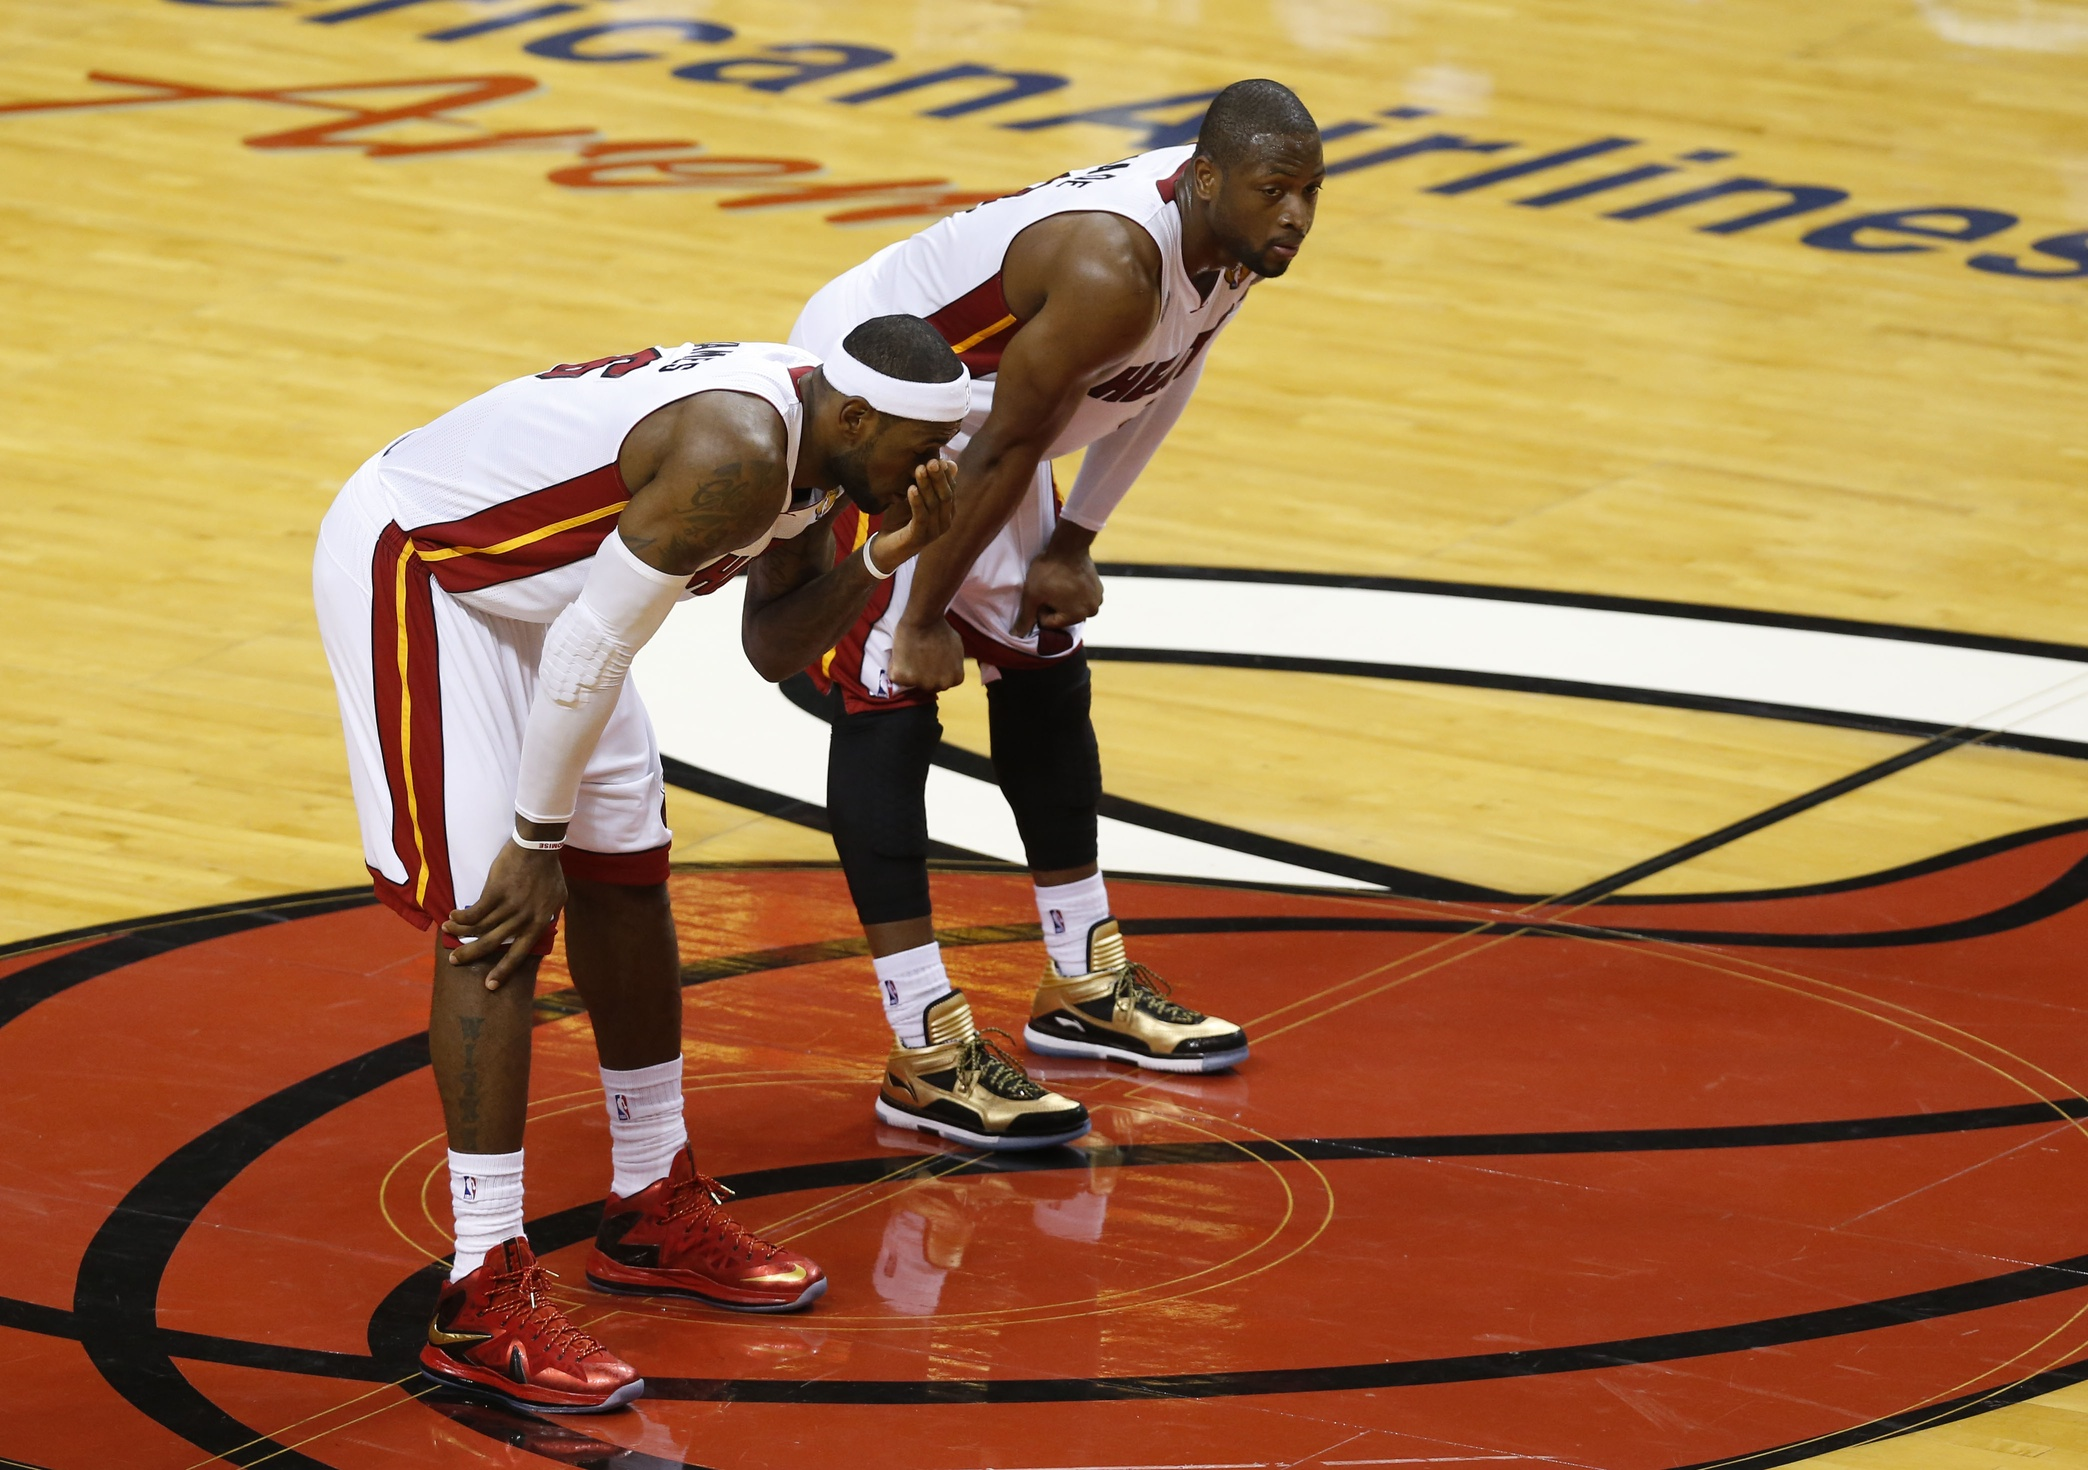 The Heat will try to serve home on their home court. Photo by Derick E. Hingle-USA TODAY Sports